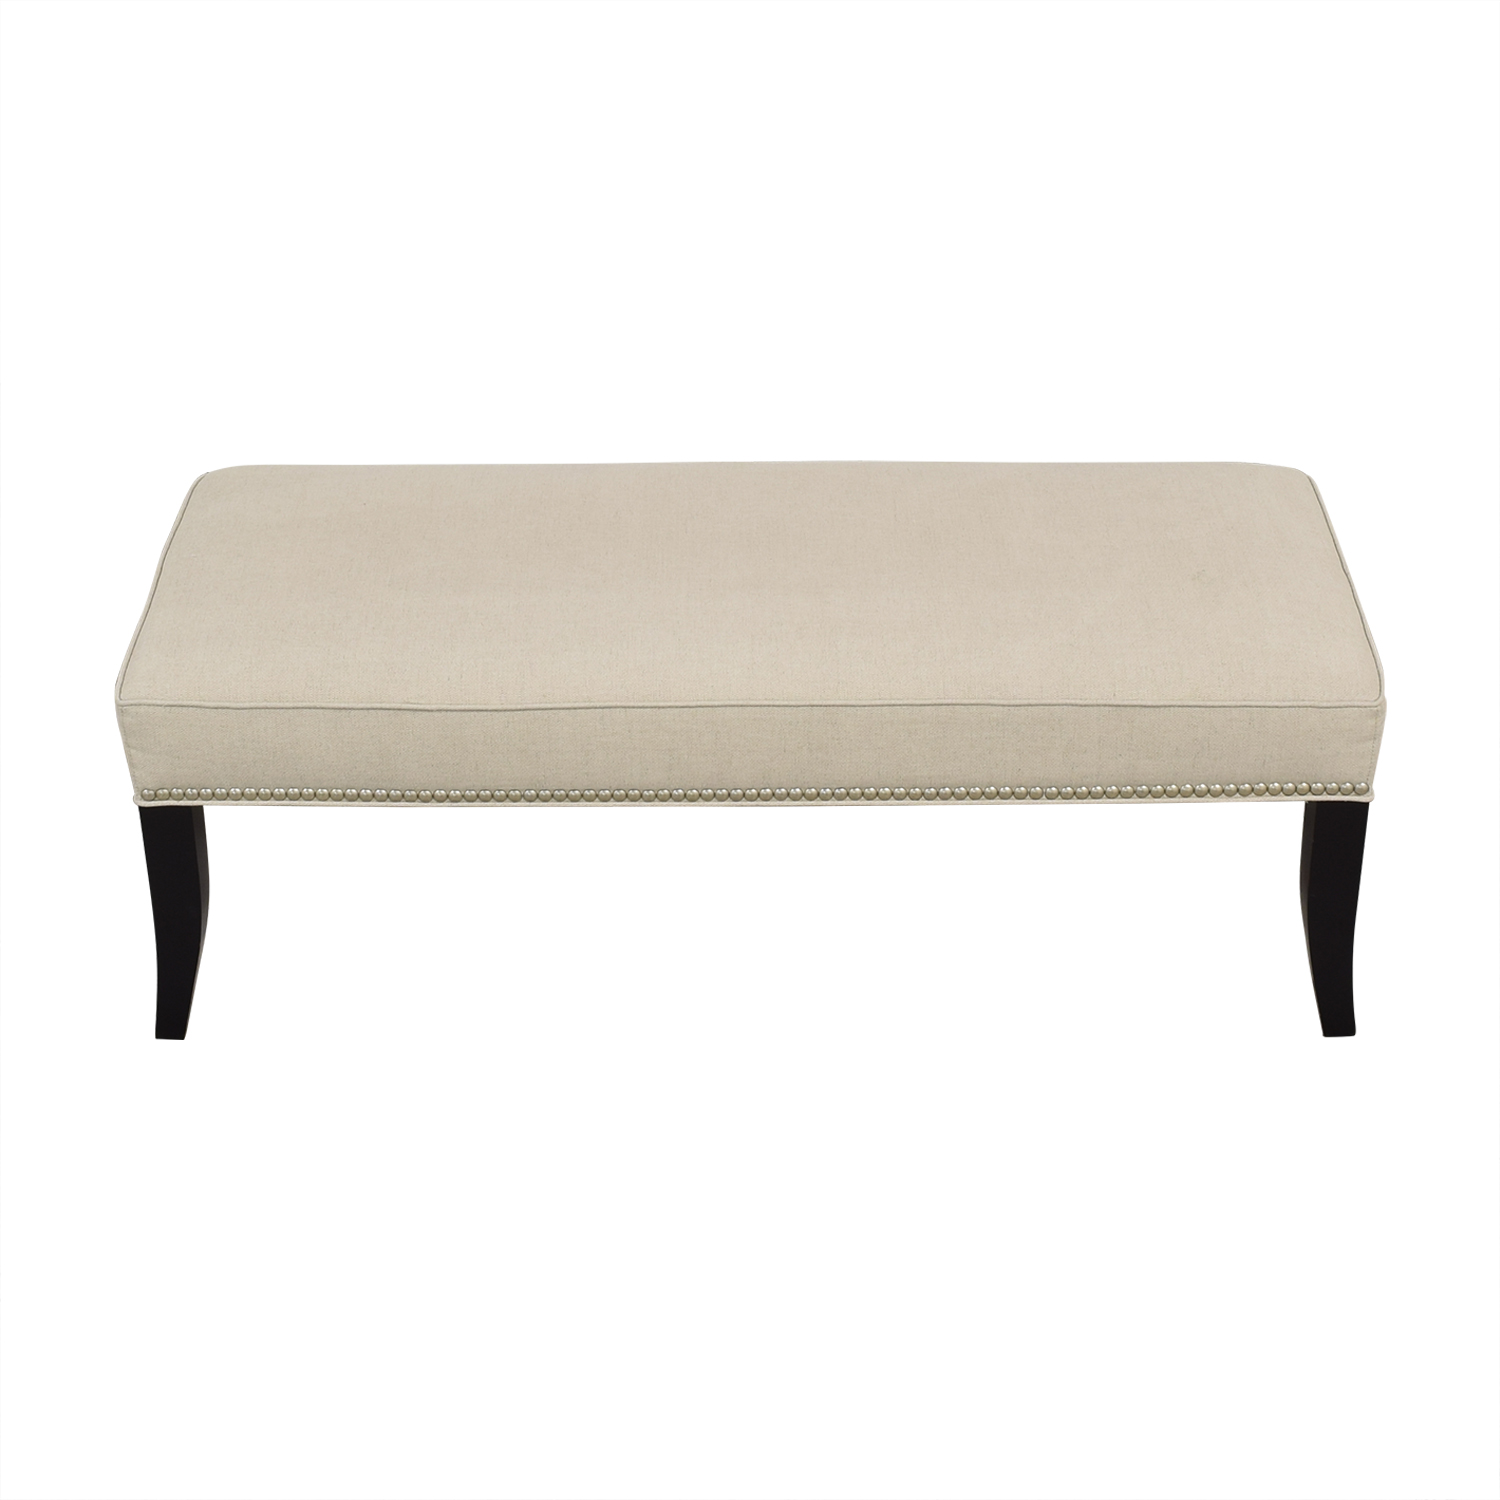 Crate & Barrel Crate & Barrel Upholstered Bench Chairs